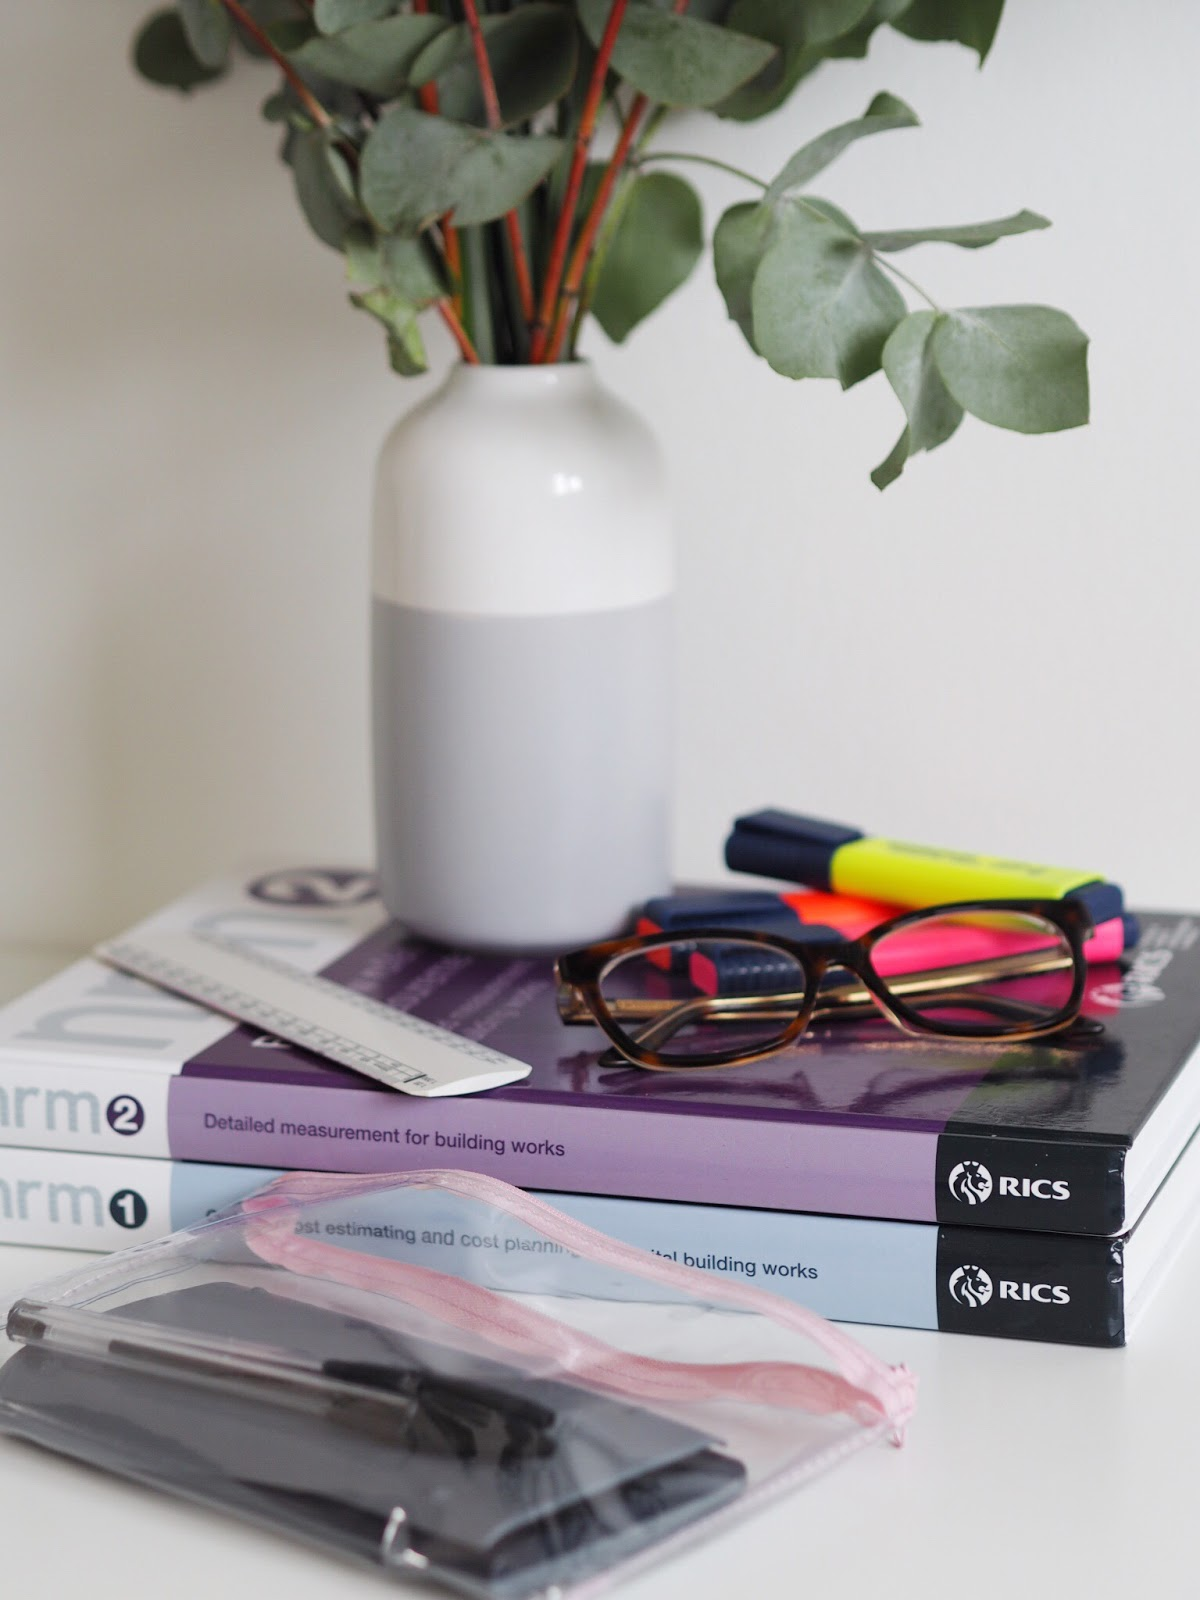 NRM1 & NRM2 Exam Books, Clear Pencil Case, Calculator, Highlighters and Glasses